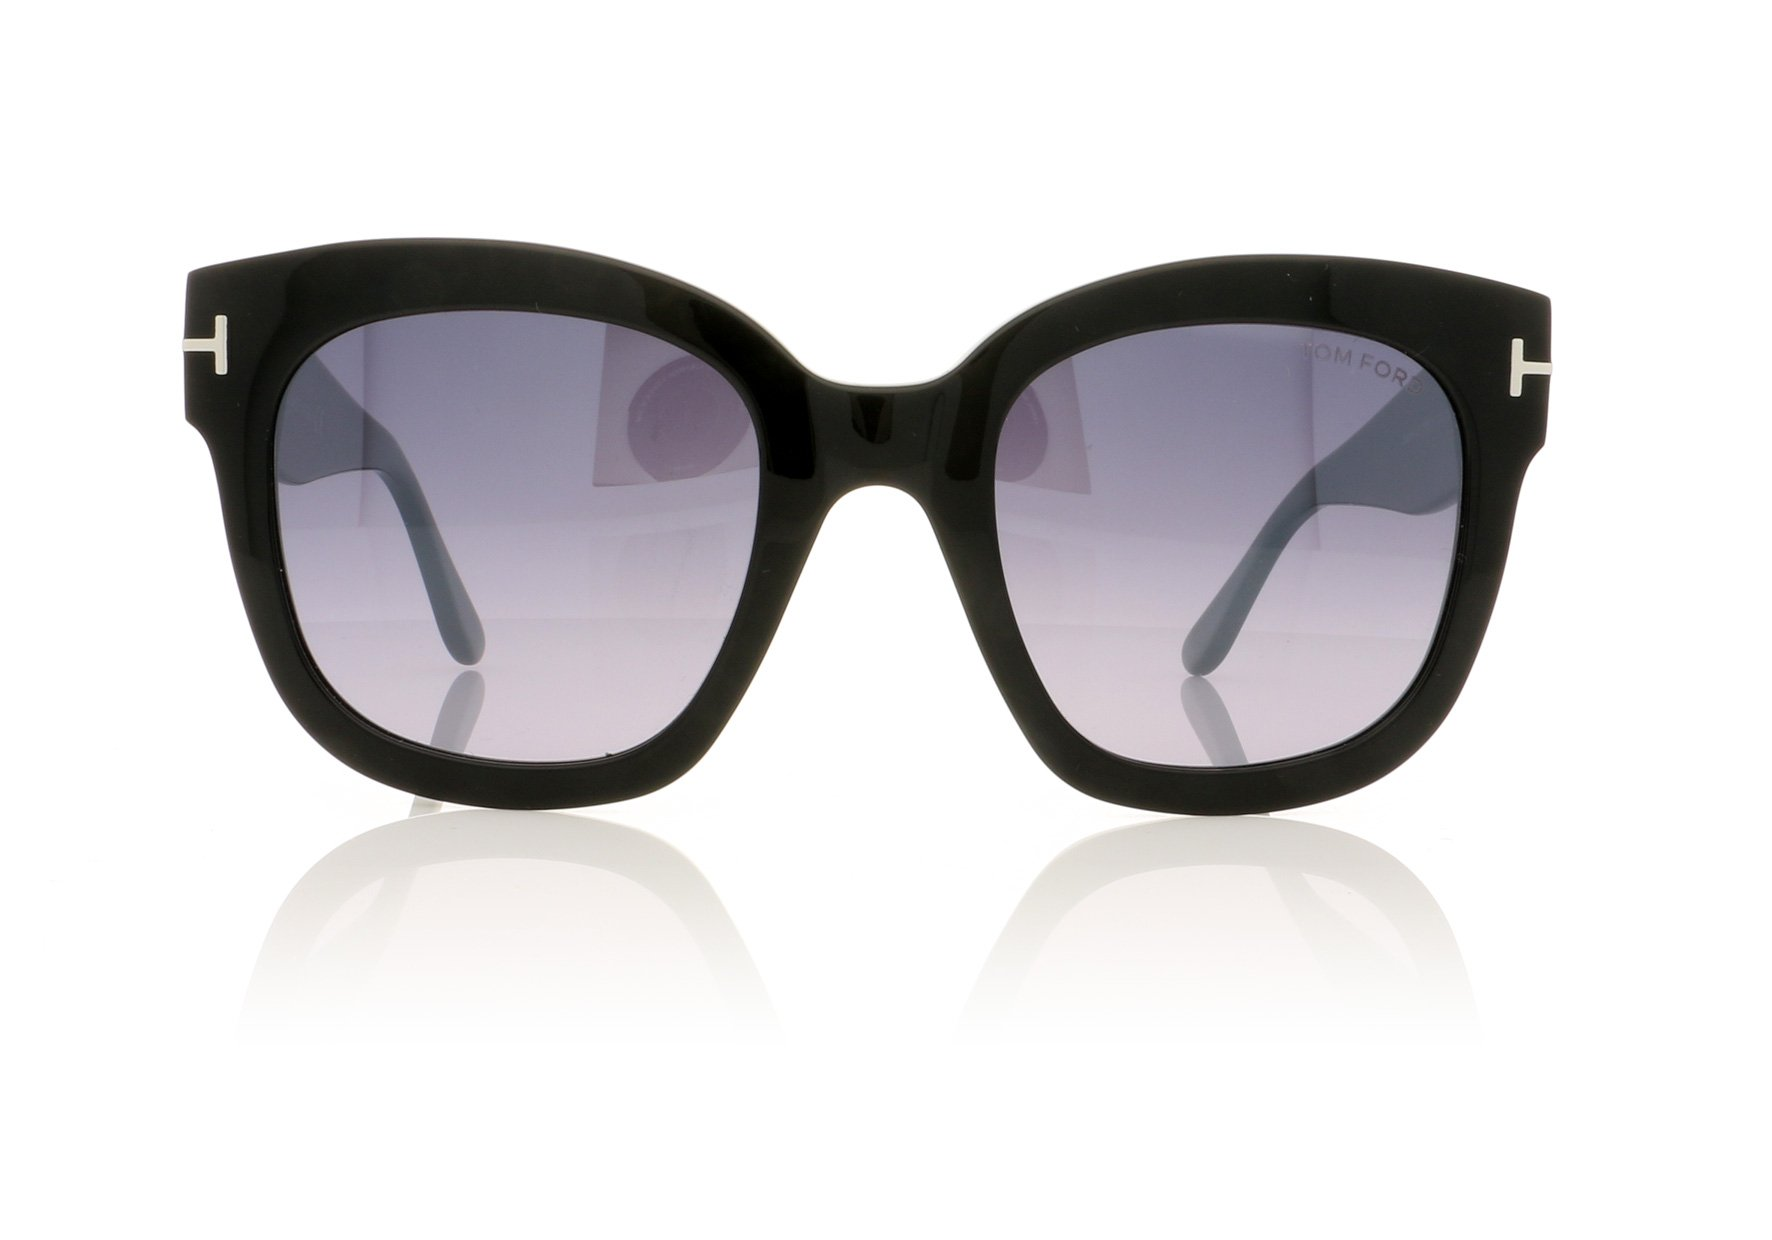 839c9965ffb Lunette de soleil tom ford homme james bond - Monture optique et lunette